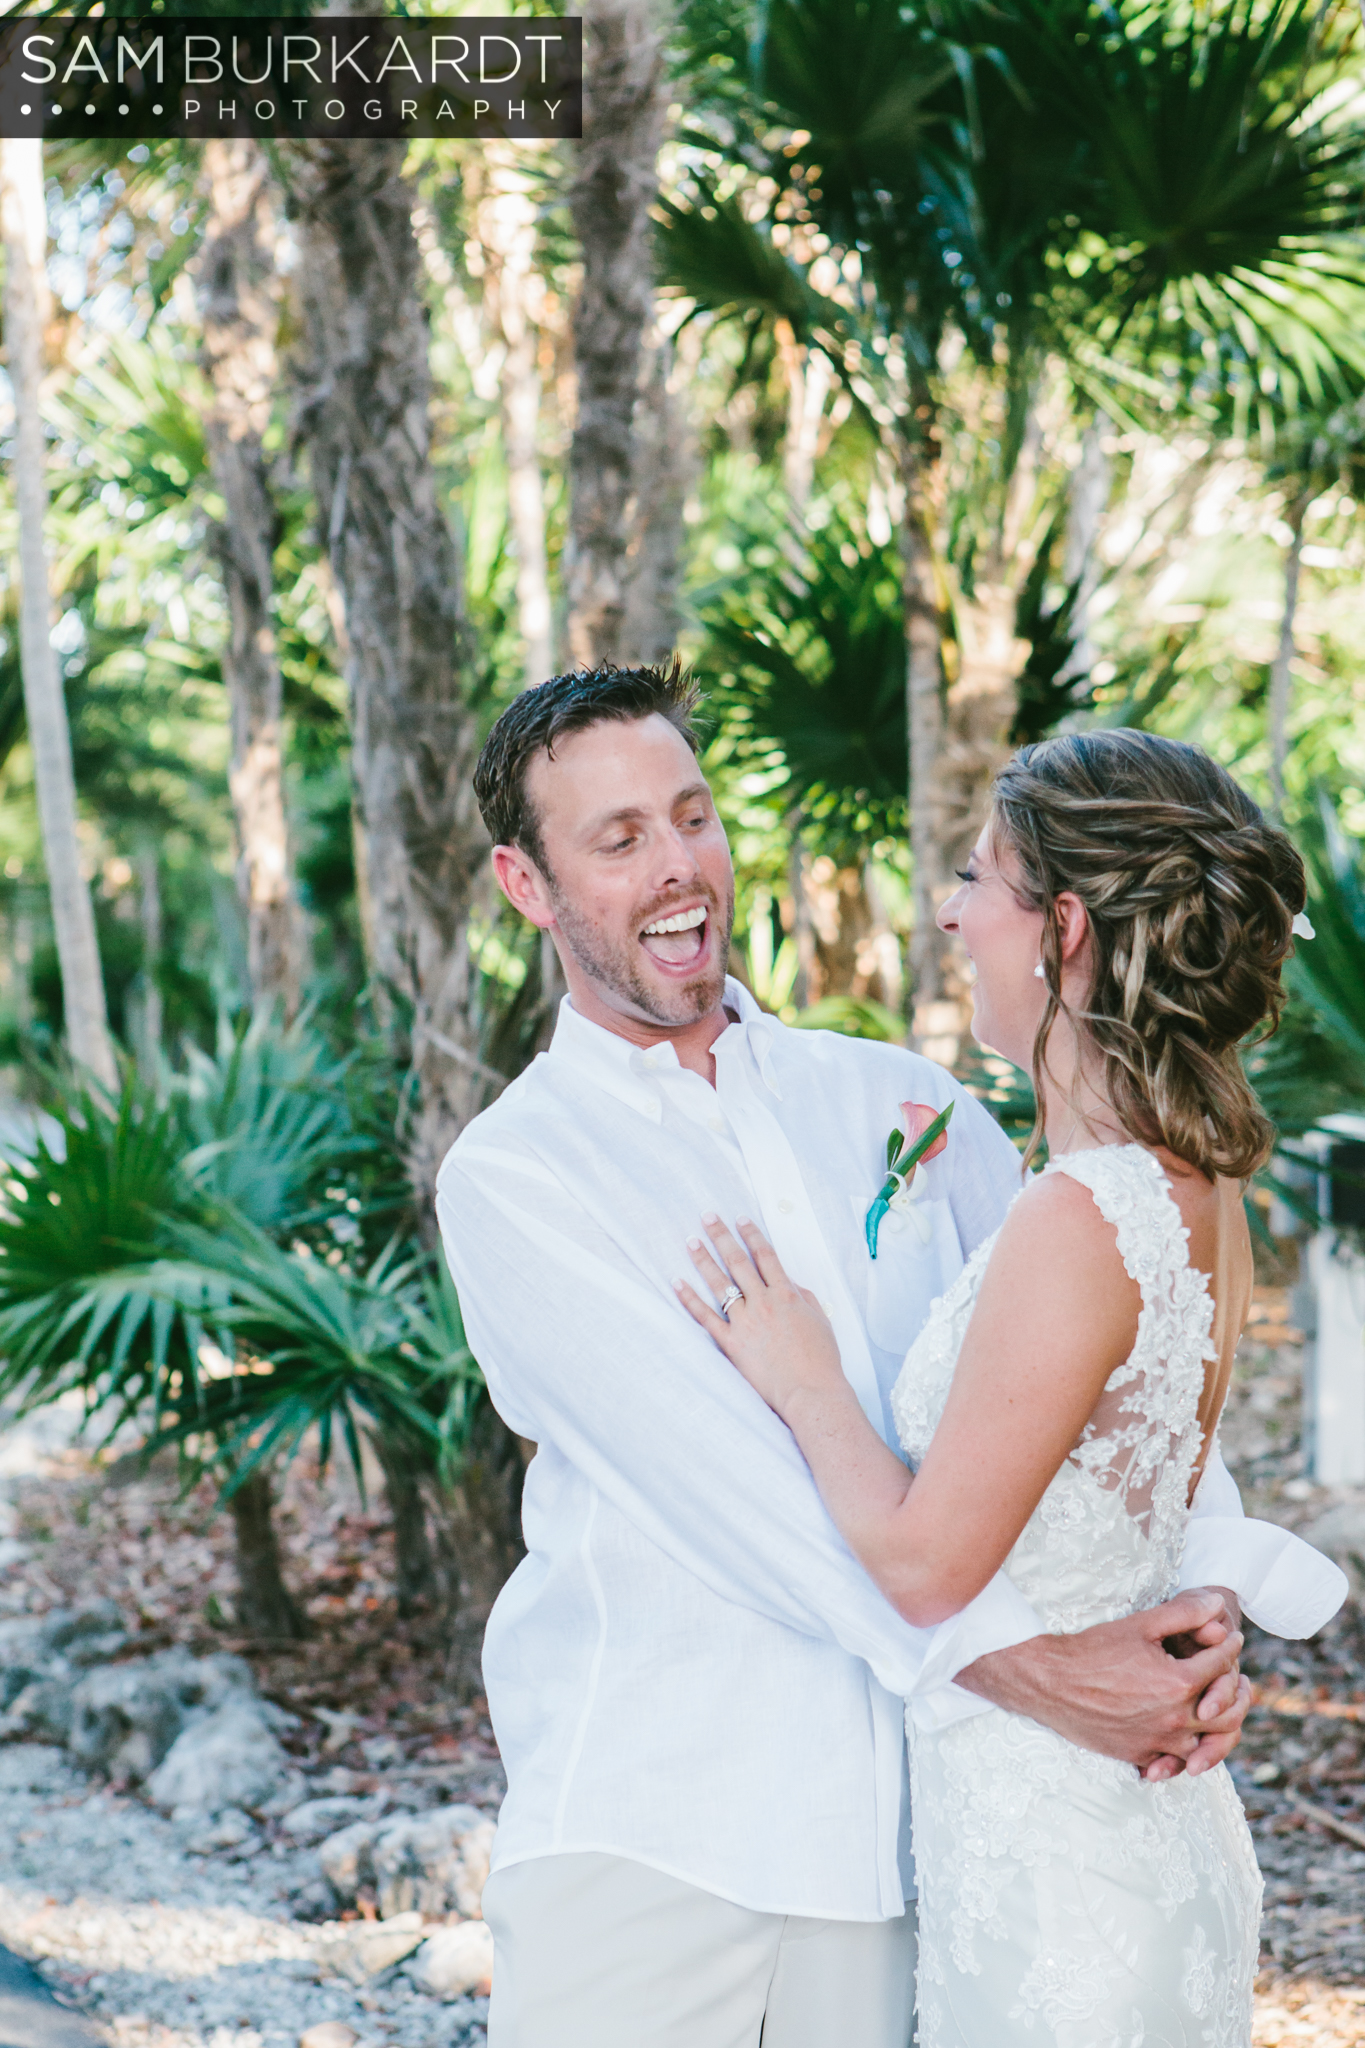 samburkardt_key_west_wedding_marathon_florida_summer_beach_ocean_front_0046.jpg